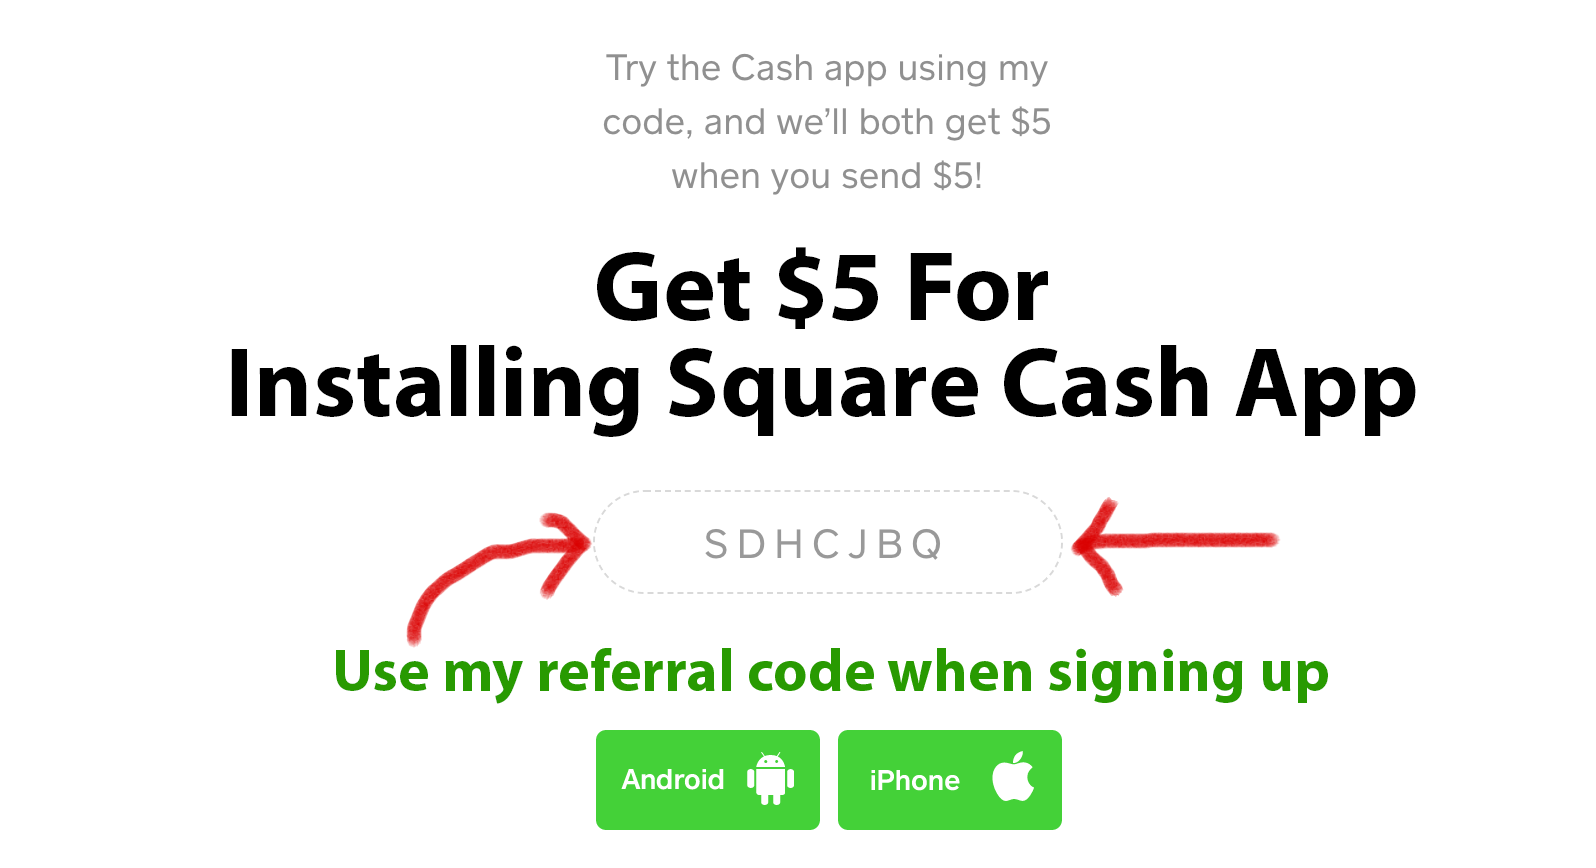 Square Cash Referral Code 'SDHCJBQ': Get $5 On Square Cash App